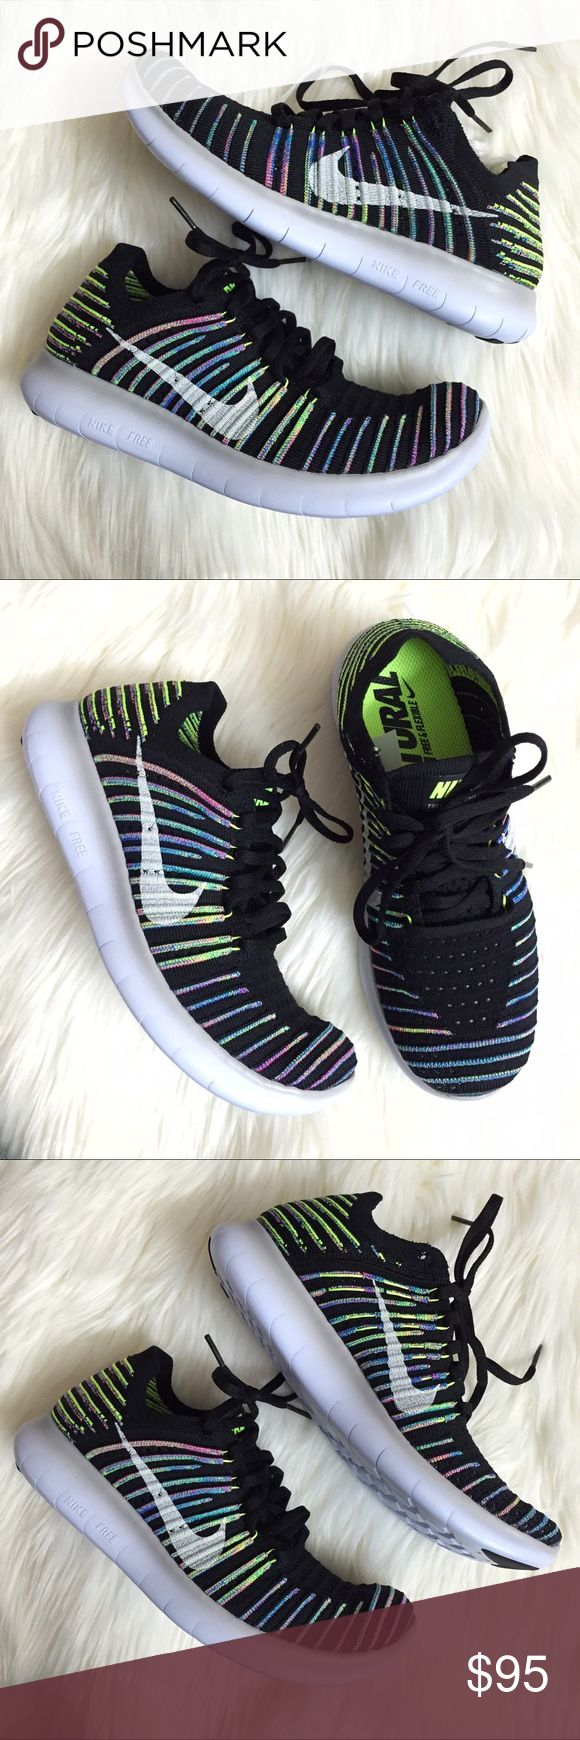 Nike Free RN Flyknit Black Multi Colored Sneakers Brand new in box (missing lid), available in women's size 7.5 and 8. These Nike Free RN Flyknit Black Multi Colored Sneakers are so lightweight and comfortable! Come in the black, white, volt and blue lagoon colorway. The Nike Free Run Flyknit uses a one-piece Flyknit upper to conform to the needs of your foot. The Flyknit thread is tightly woven in areas that require more support, while a looser weave allows cooling airflow in the forefoot…